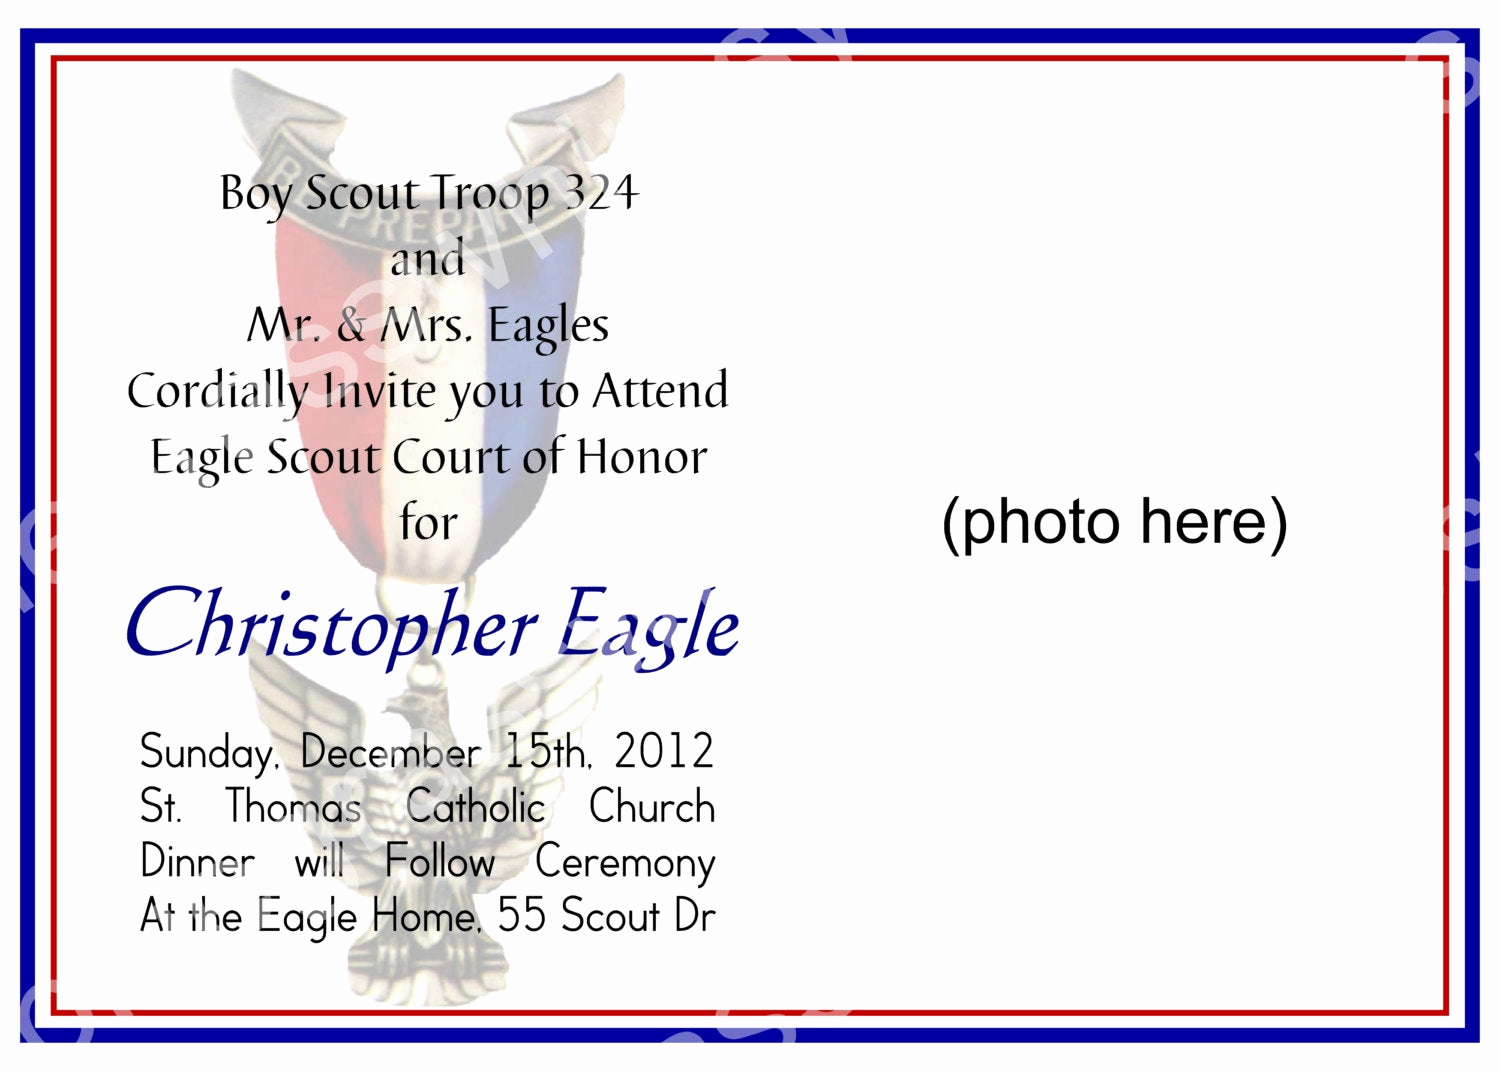 Eagle Scout Invitation Wording Fresh Eagle Scout Court Of Honor Invitation Customizable Photo